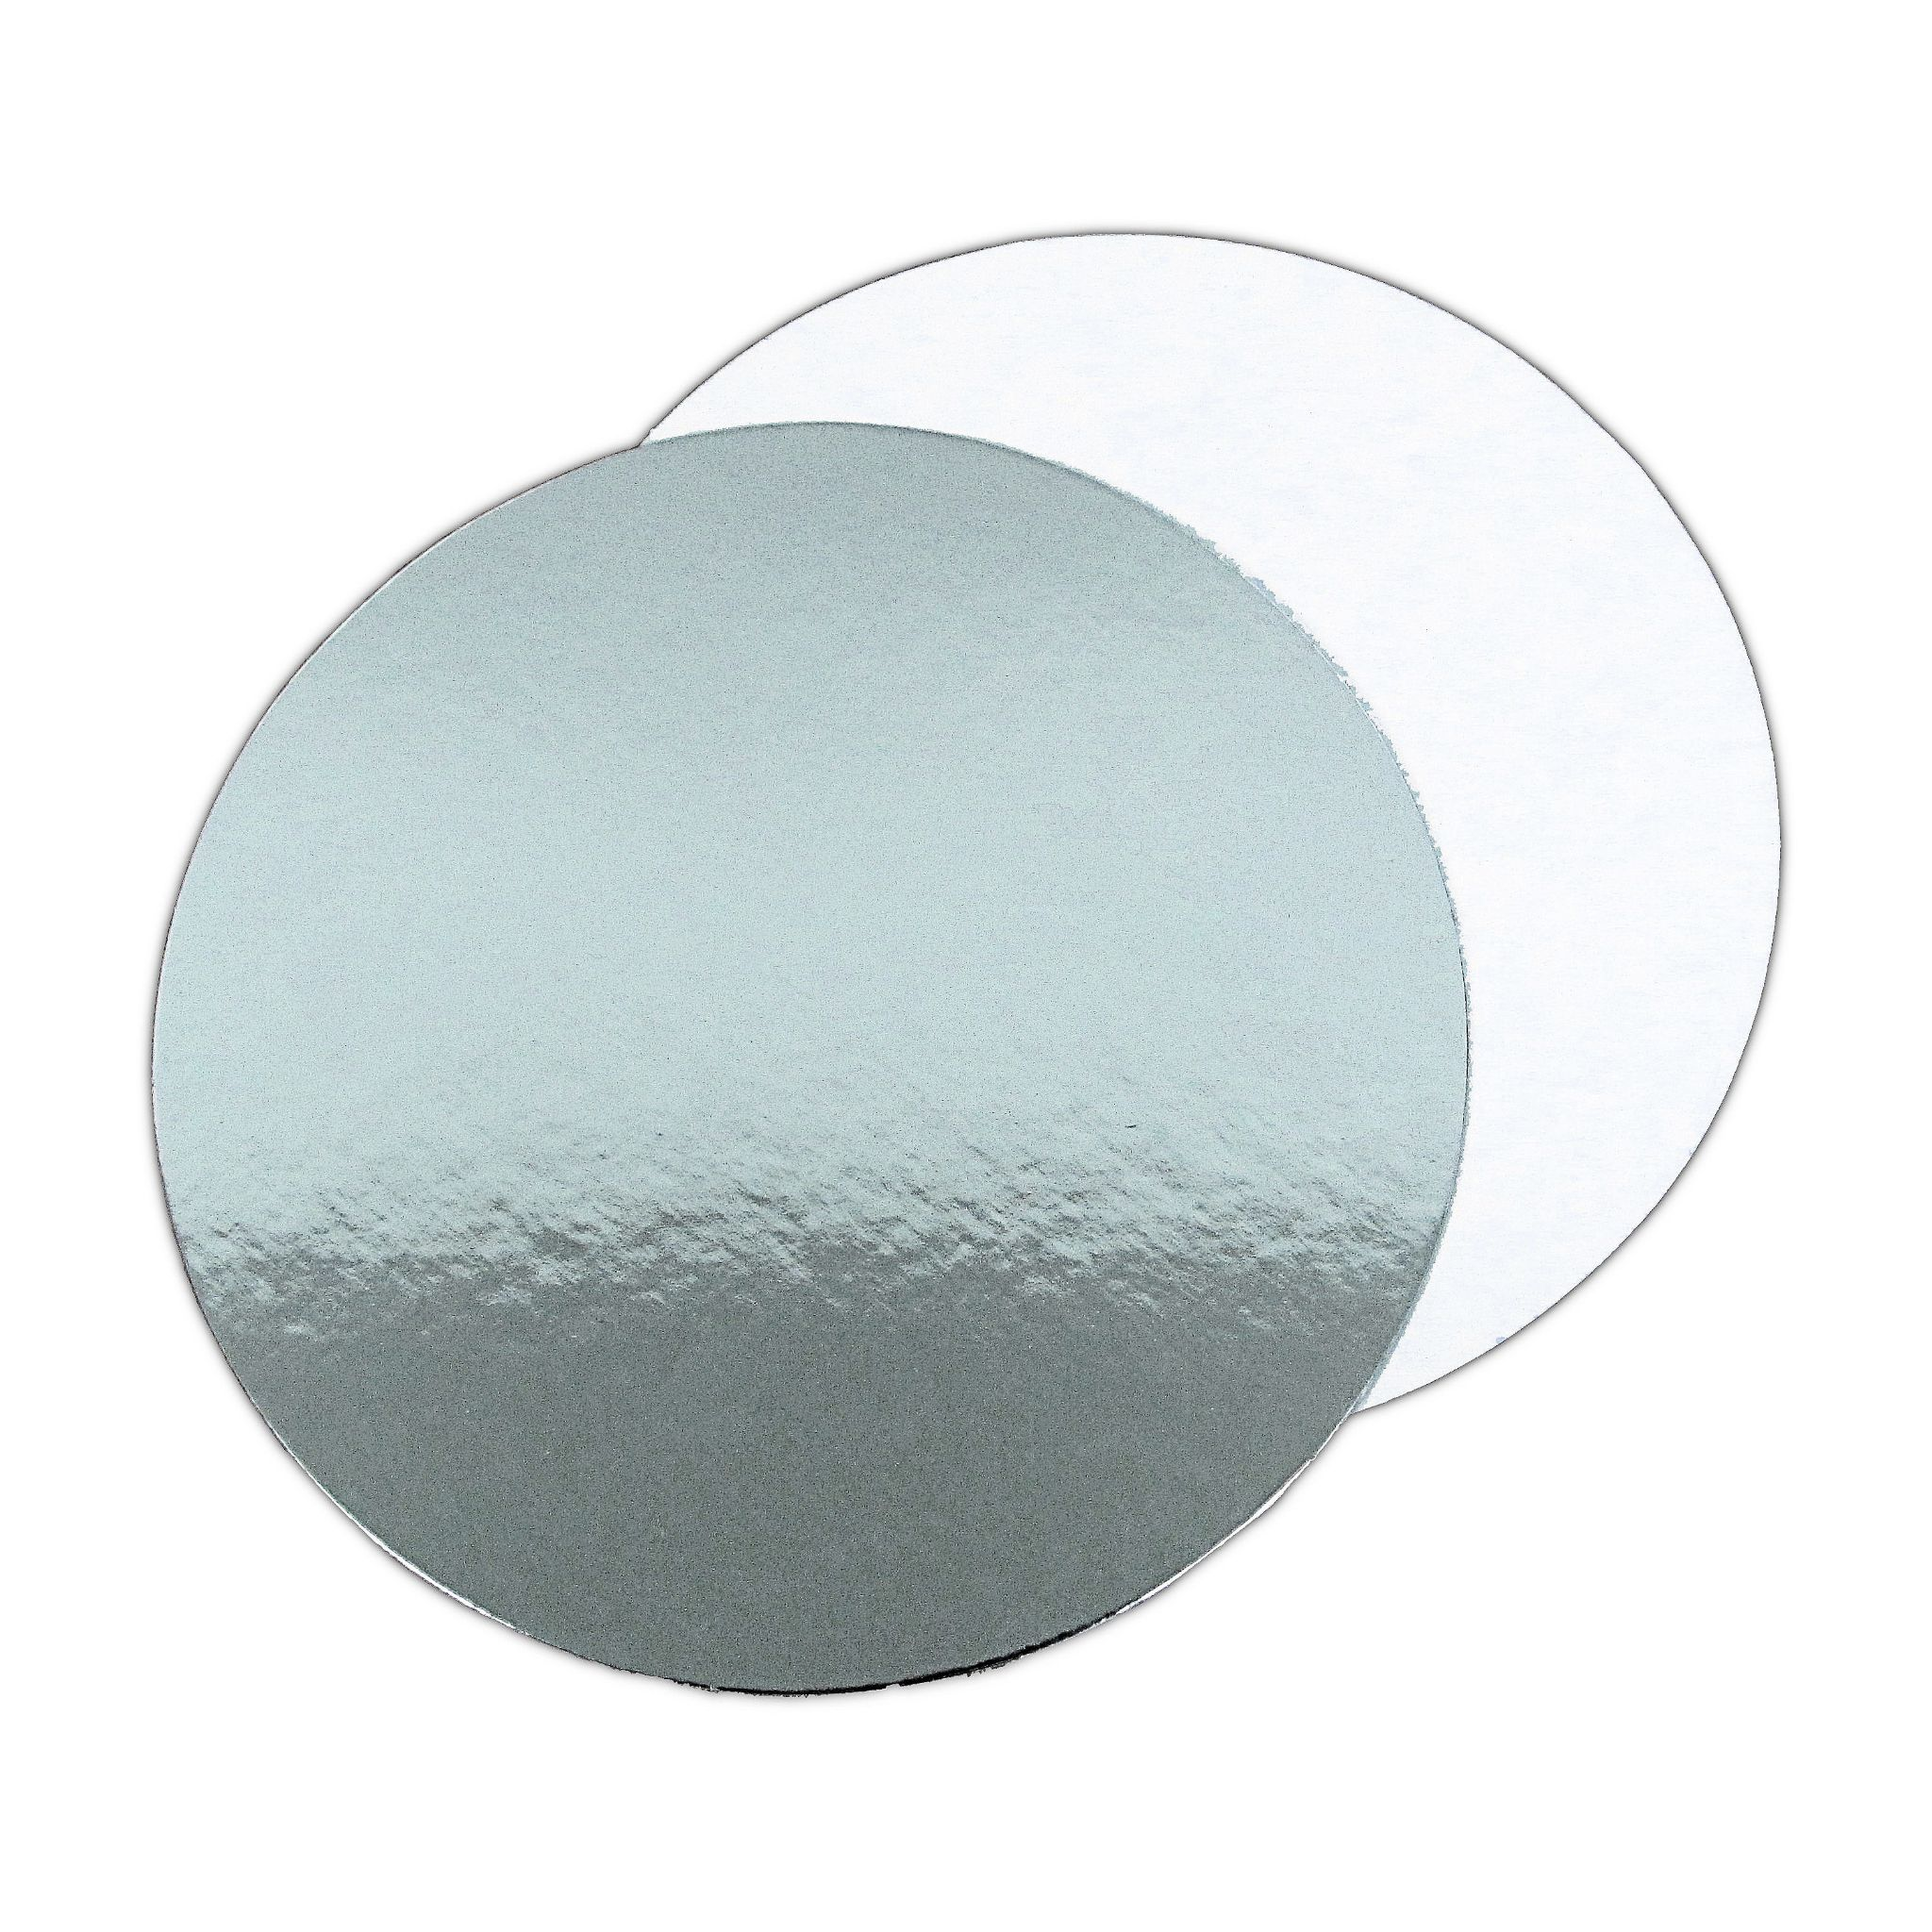 SCC034225 - 9'' Round Silver/White Cut Edge Cake Boards x 25